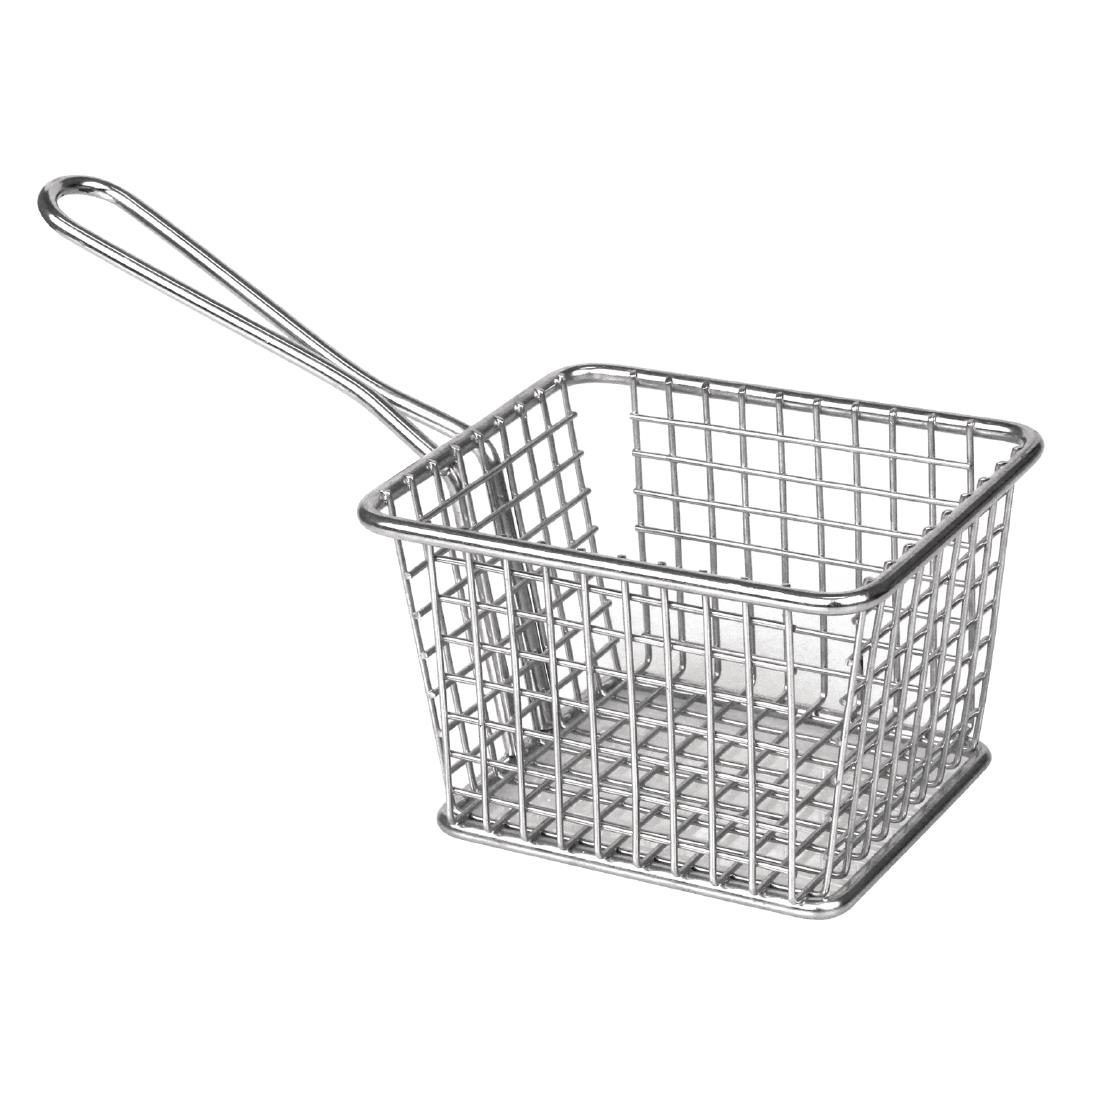 Olympia Large Wire Fries Basket Made of Stainless Steel